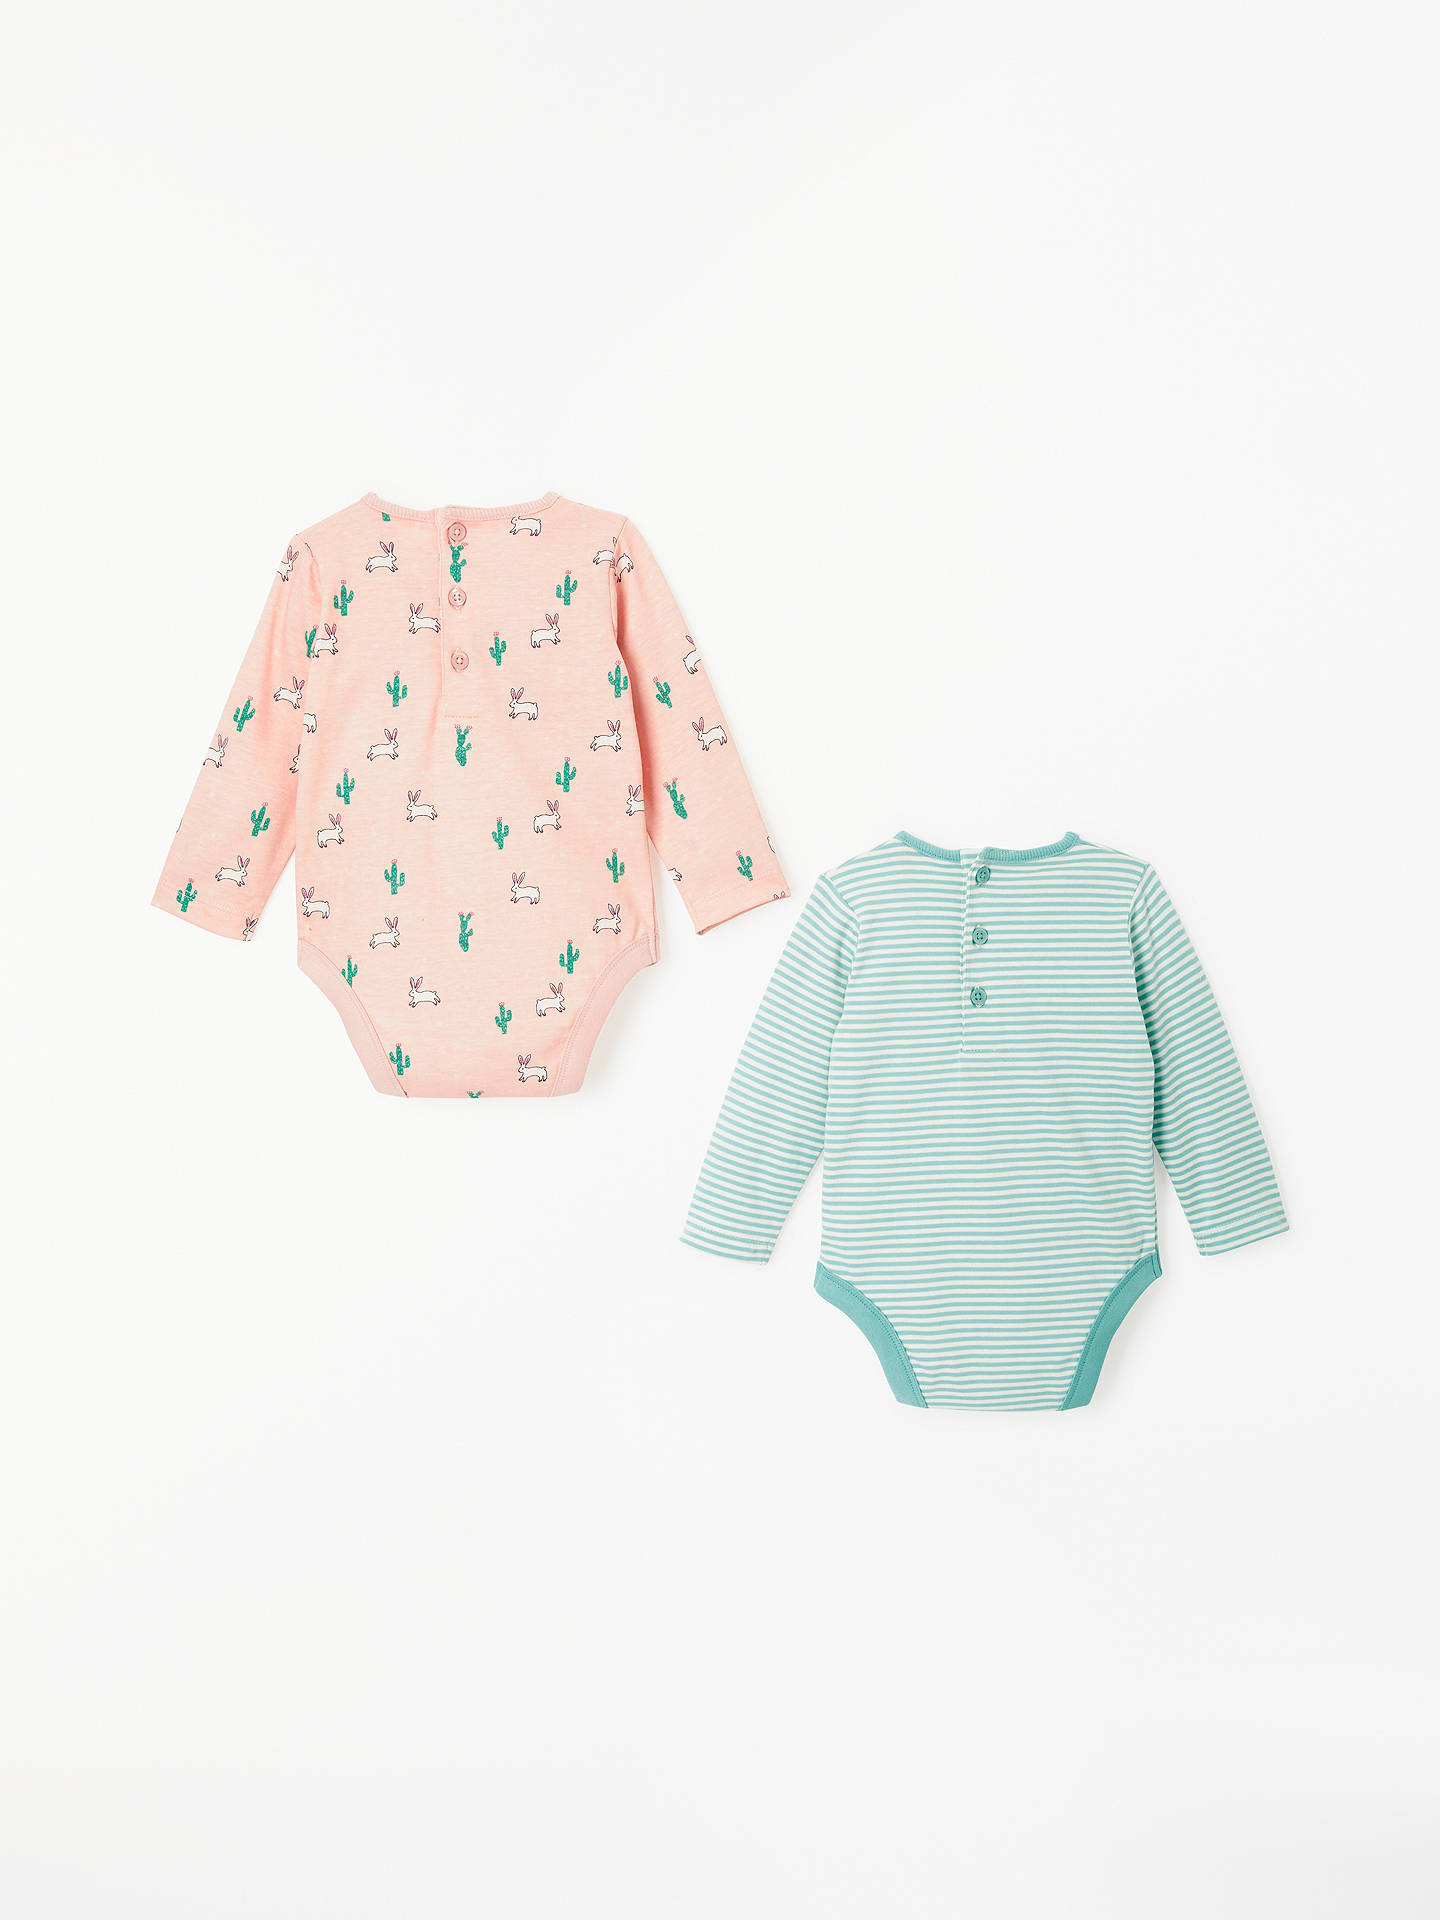 7e1d357ce ... Buy John Lewis & Partners Baby Cactus and Bunny Long Sleeve Bodysuit,  Pack of 2 ...